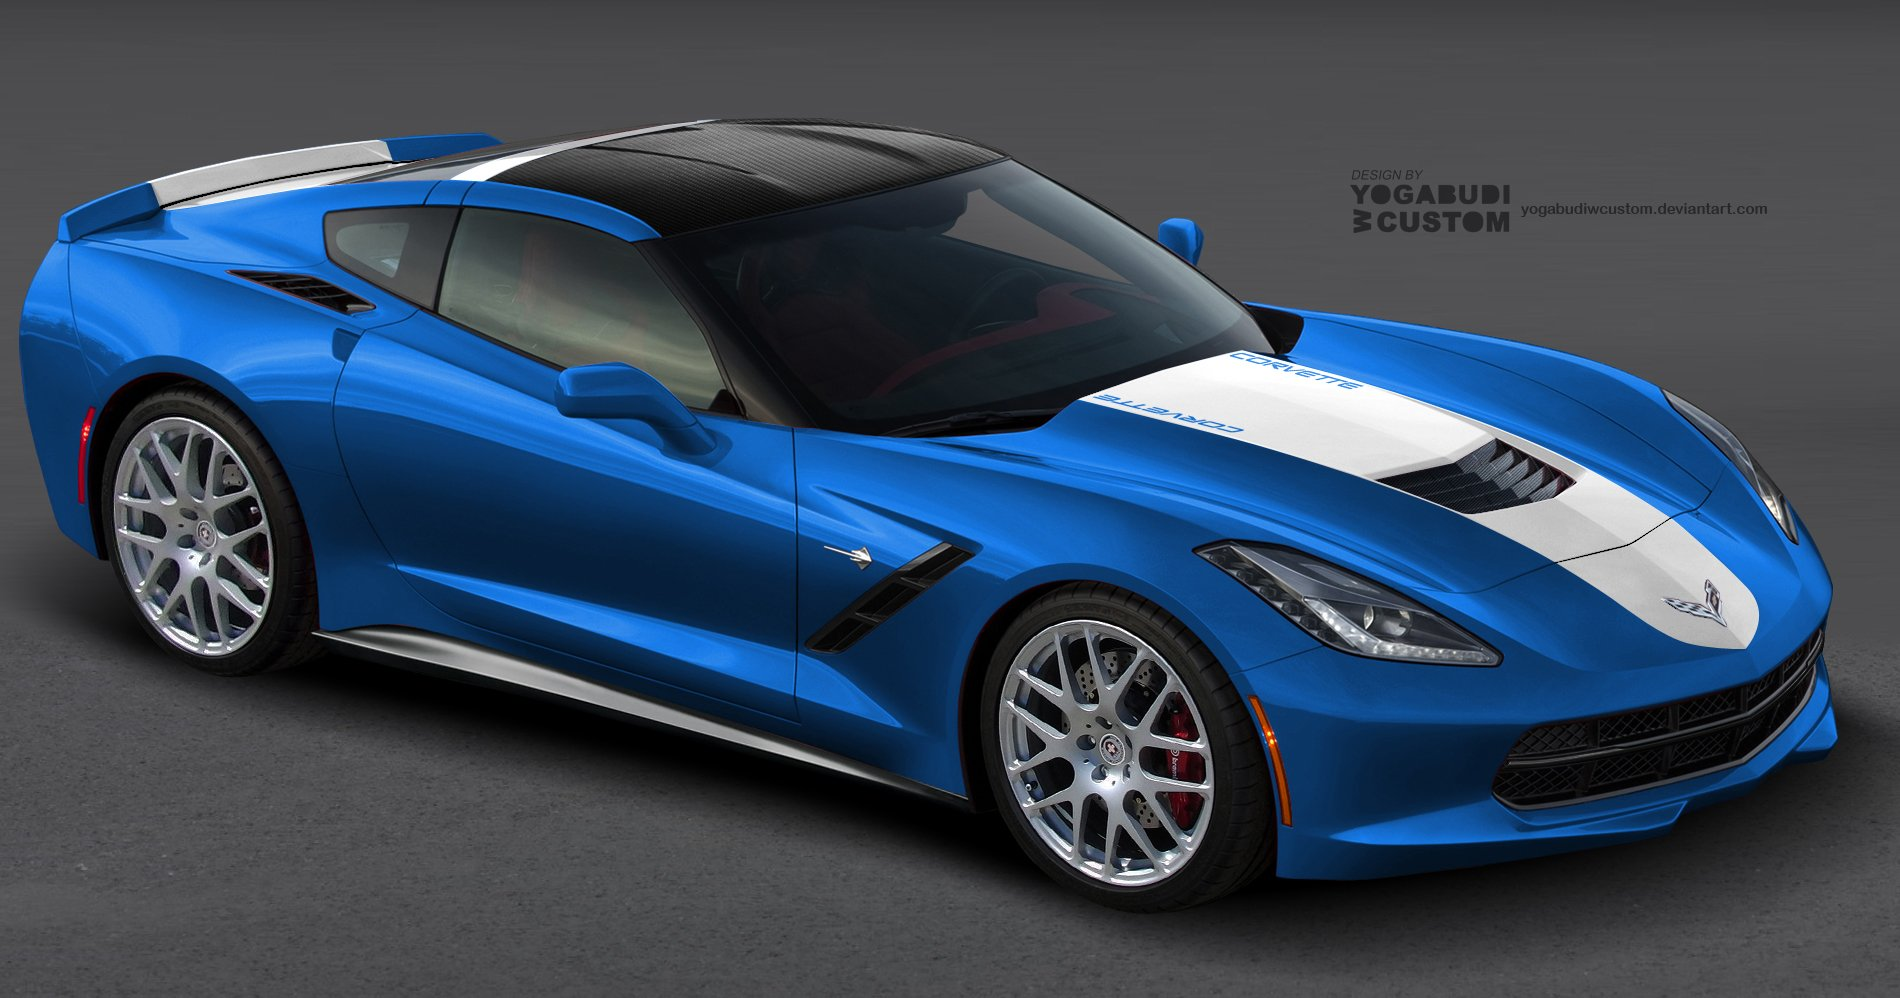 C7 Corvette Stingray Wallpaper Corvette stingray c7 simple 1900x998